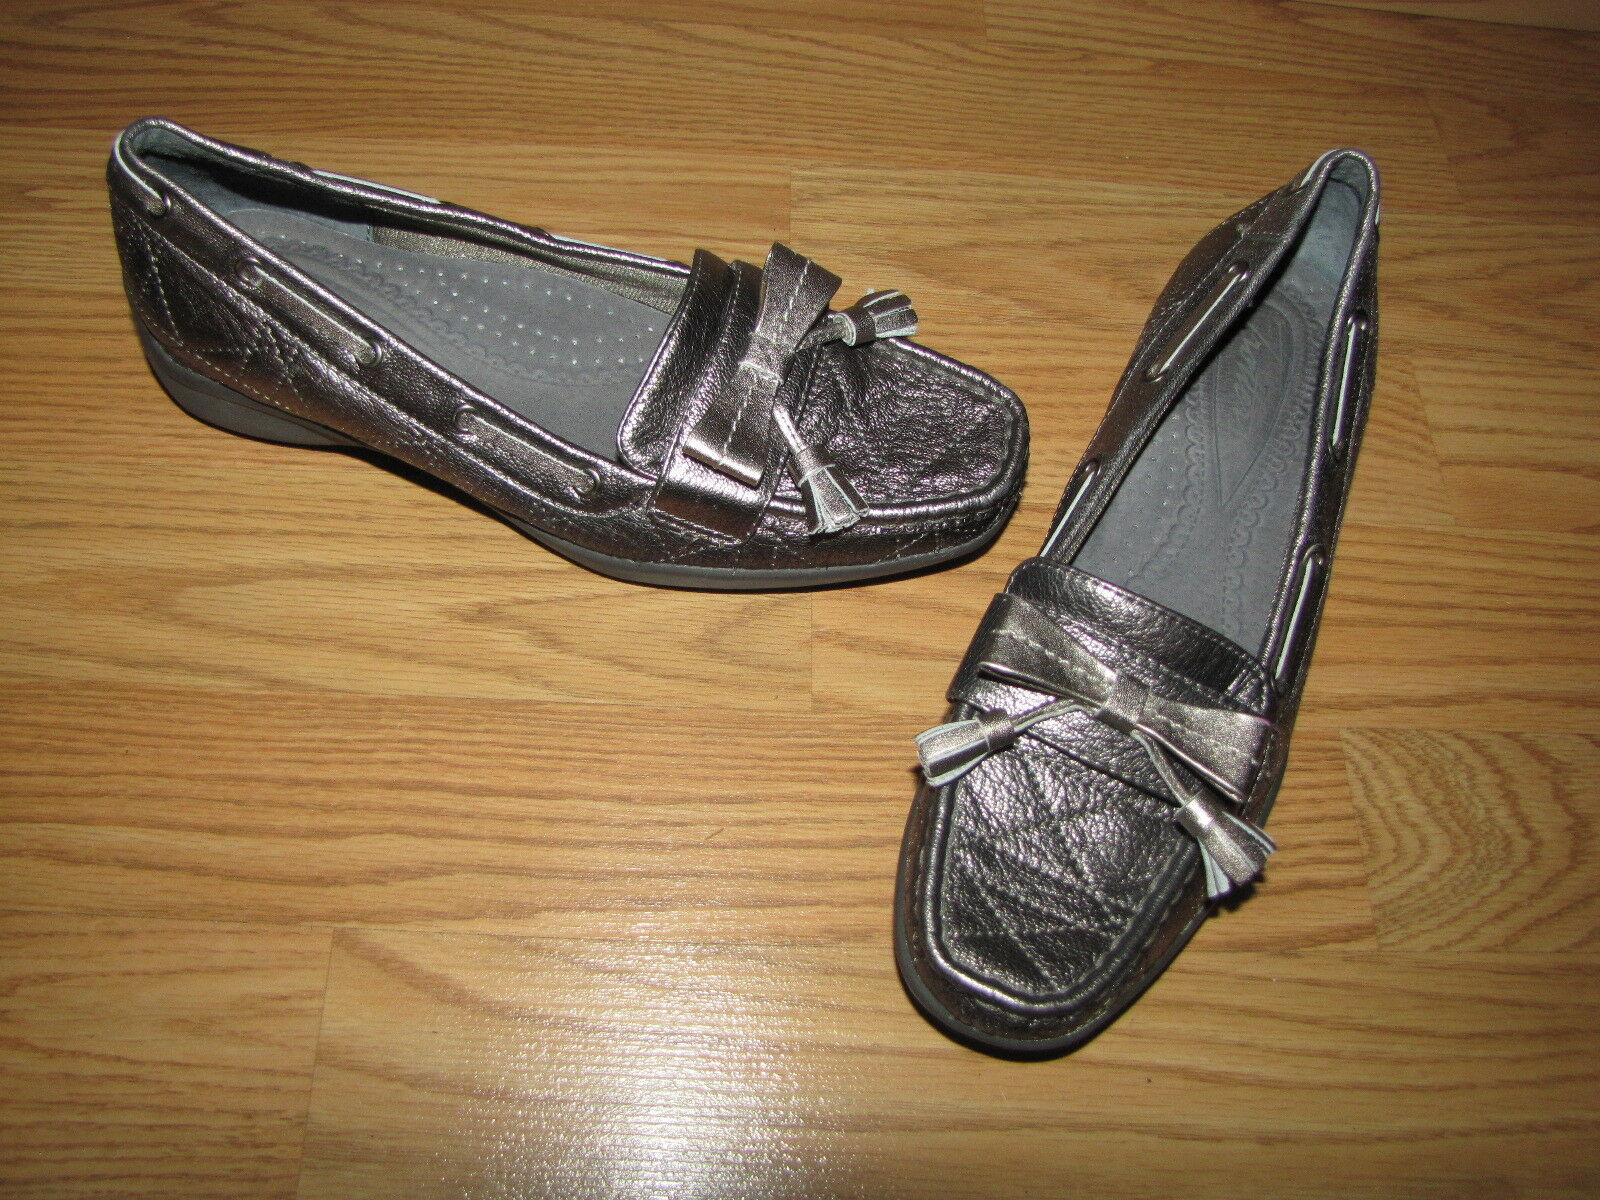 NWOB Tredters Metallic Pewter Bow Tassel Loafers - 6N European 36